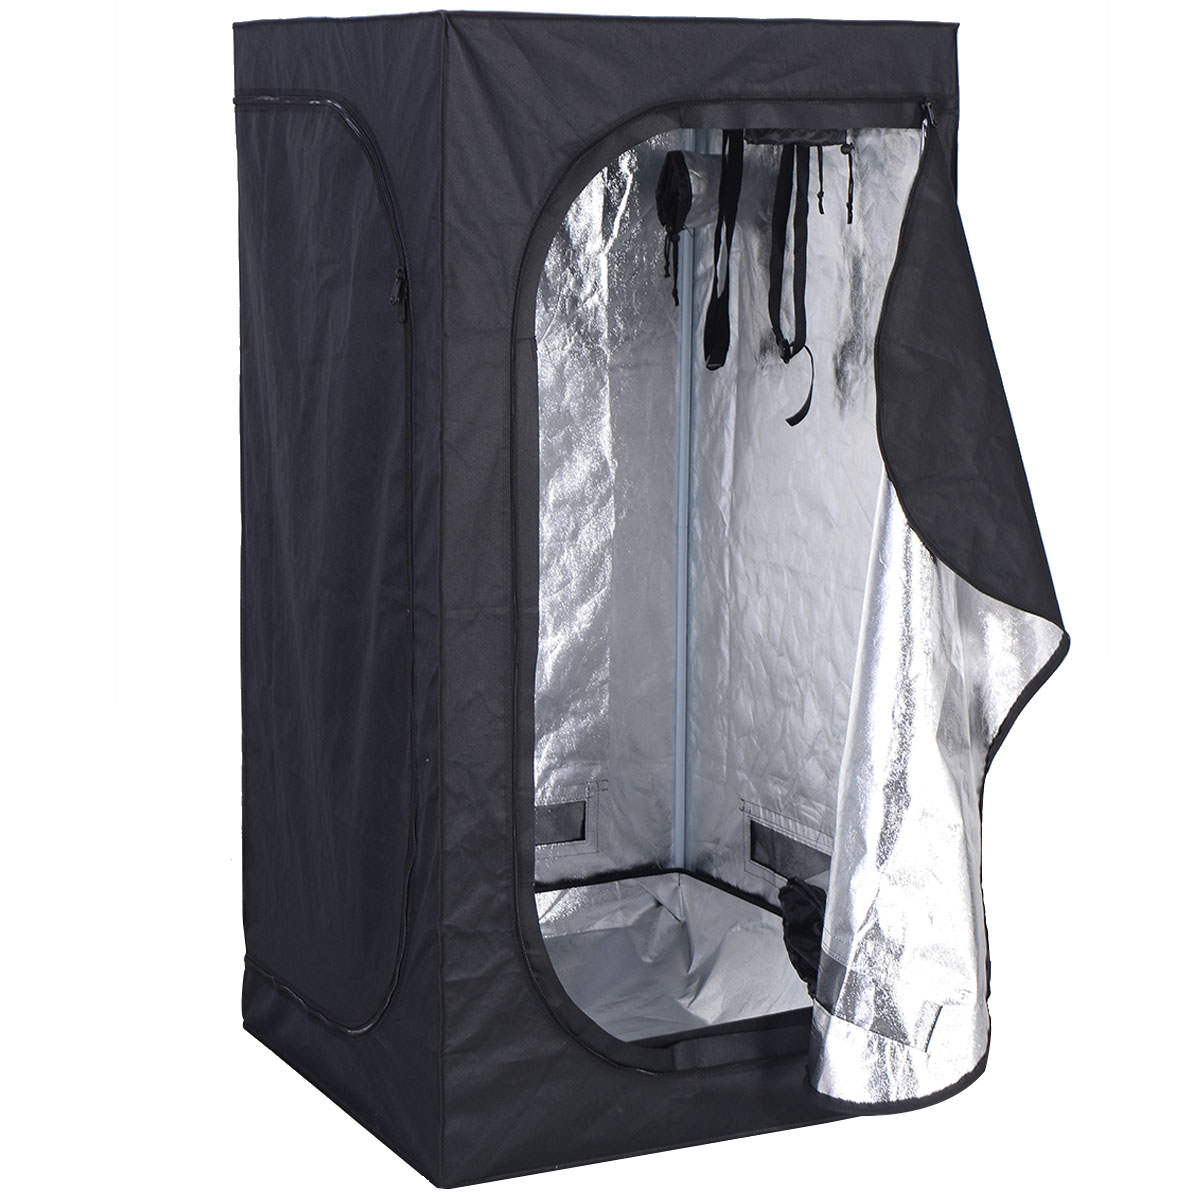 Costway Indoor Grow Tent Room Reflective Hydroponic Non Toxic Clone Hut 6 Size (32u0027  sc 1 st  Walmart & Costway Indoor Grow Tent Room Reflective Hydroponic Non Toxic ...